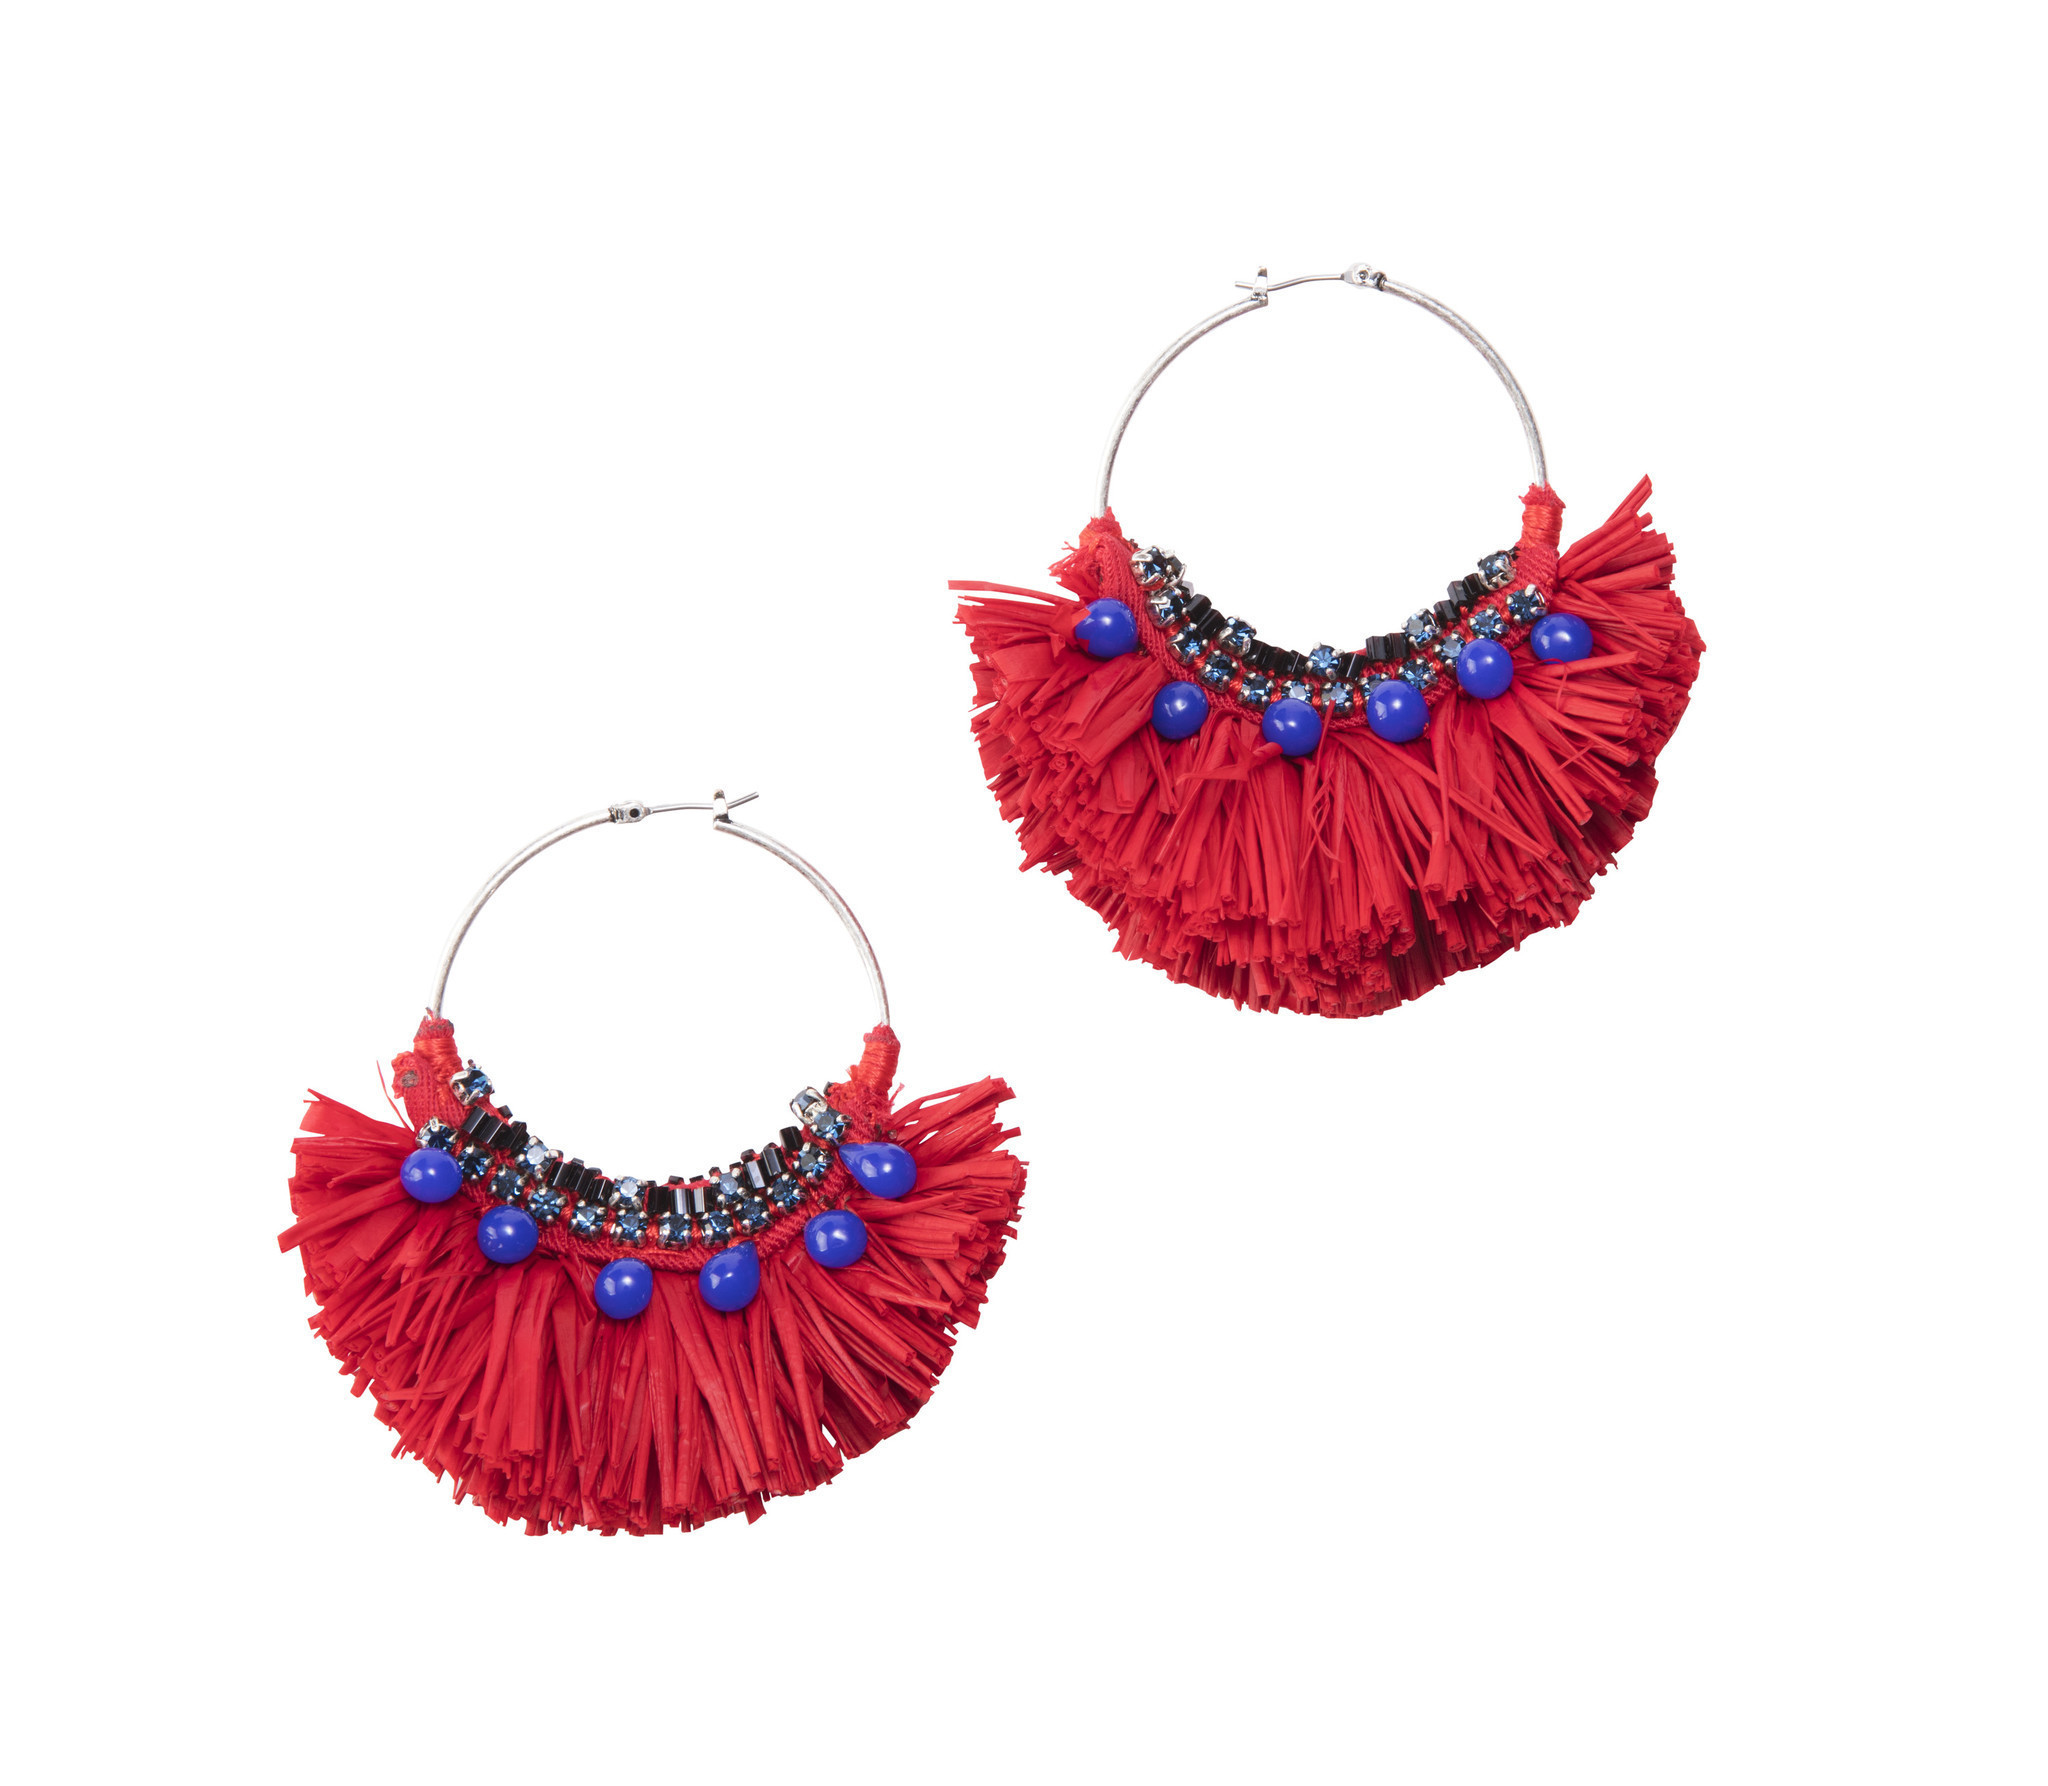 Fashion 5 Raffia earrings by Ann Taylor and more